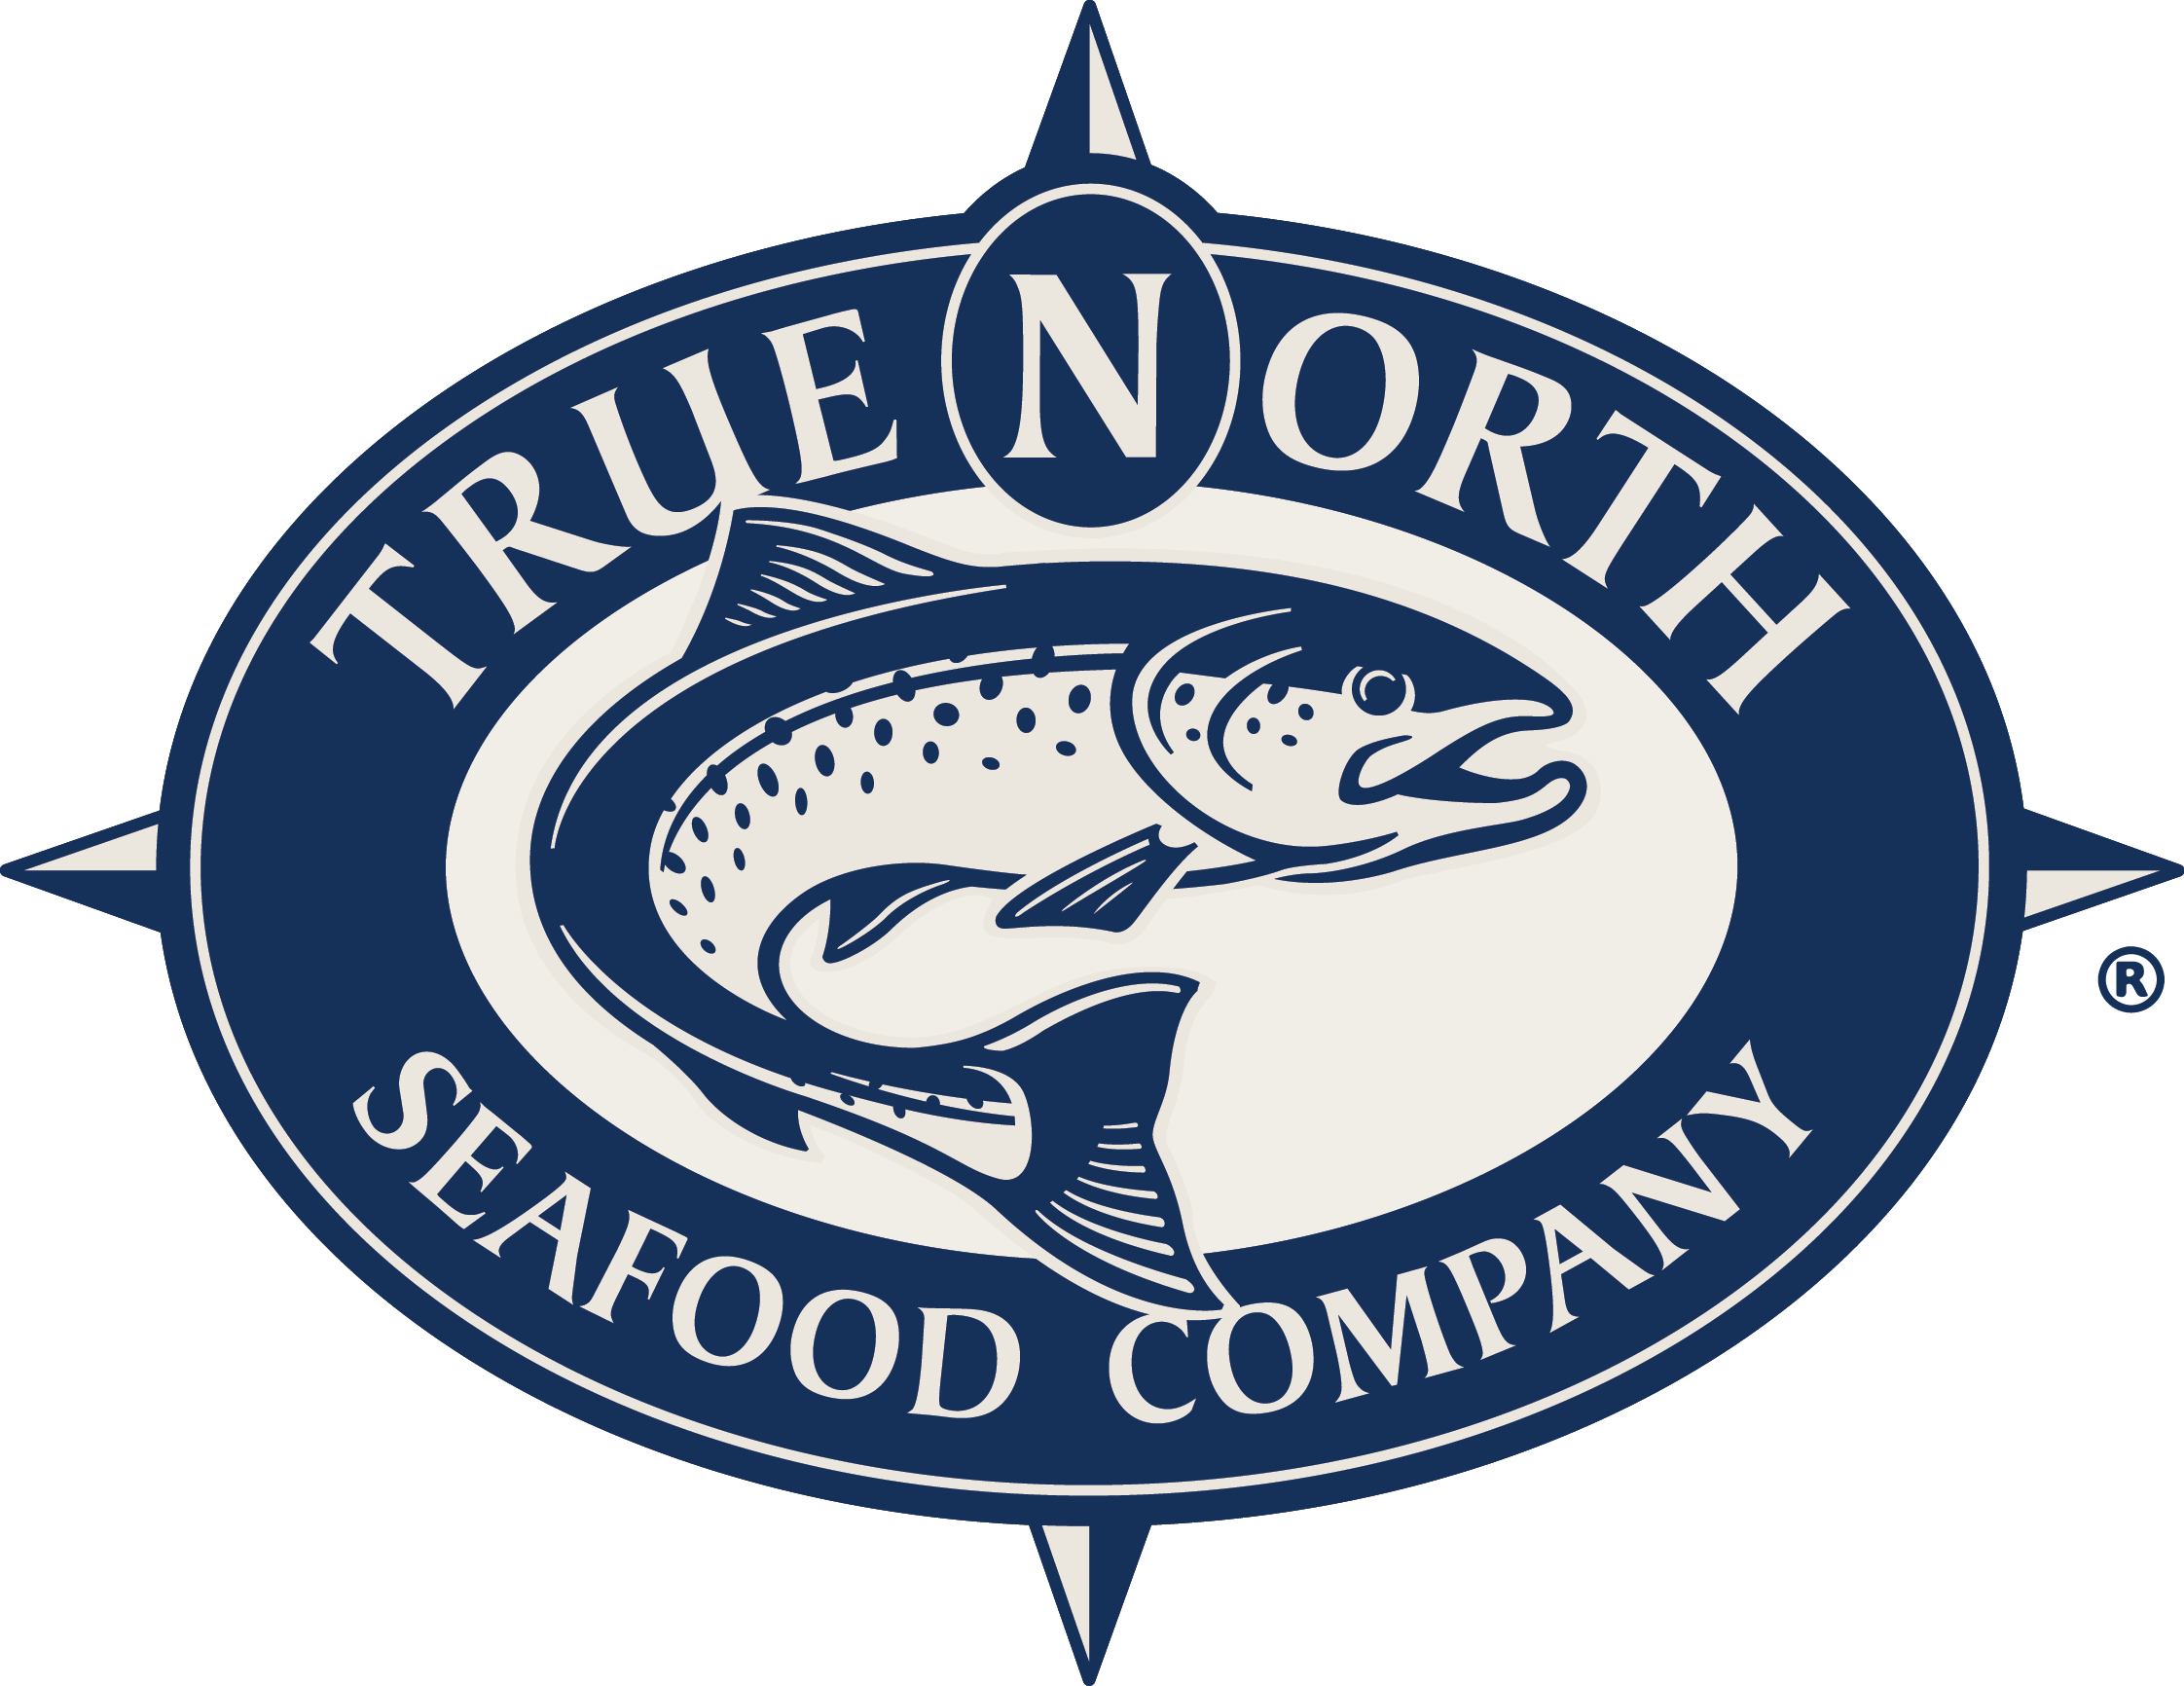 True North Seafood Company